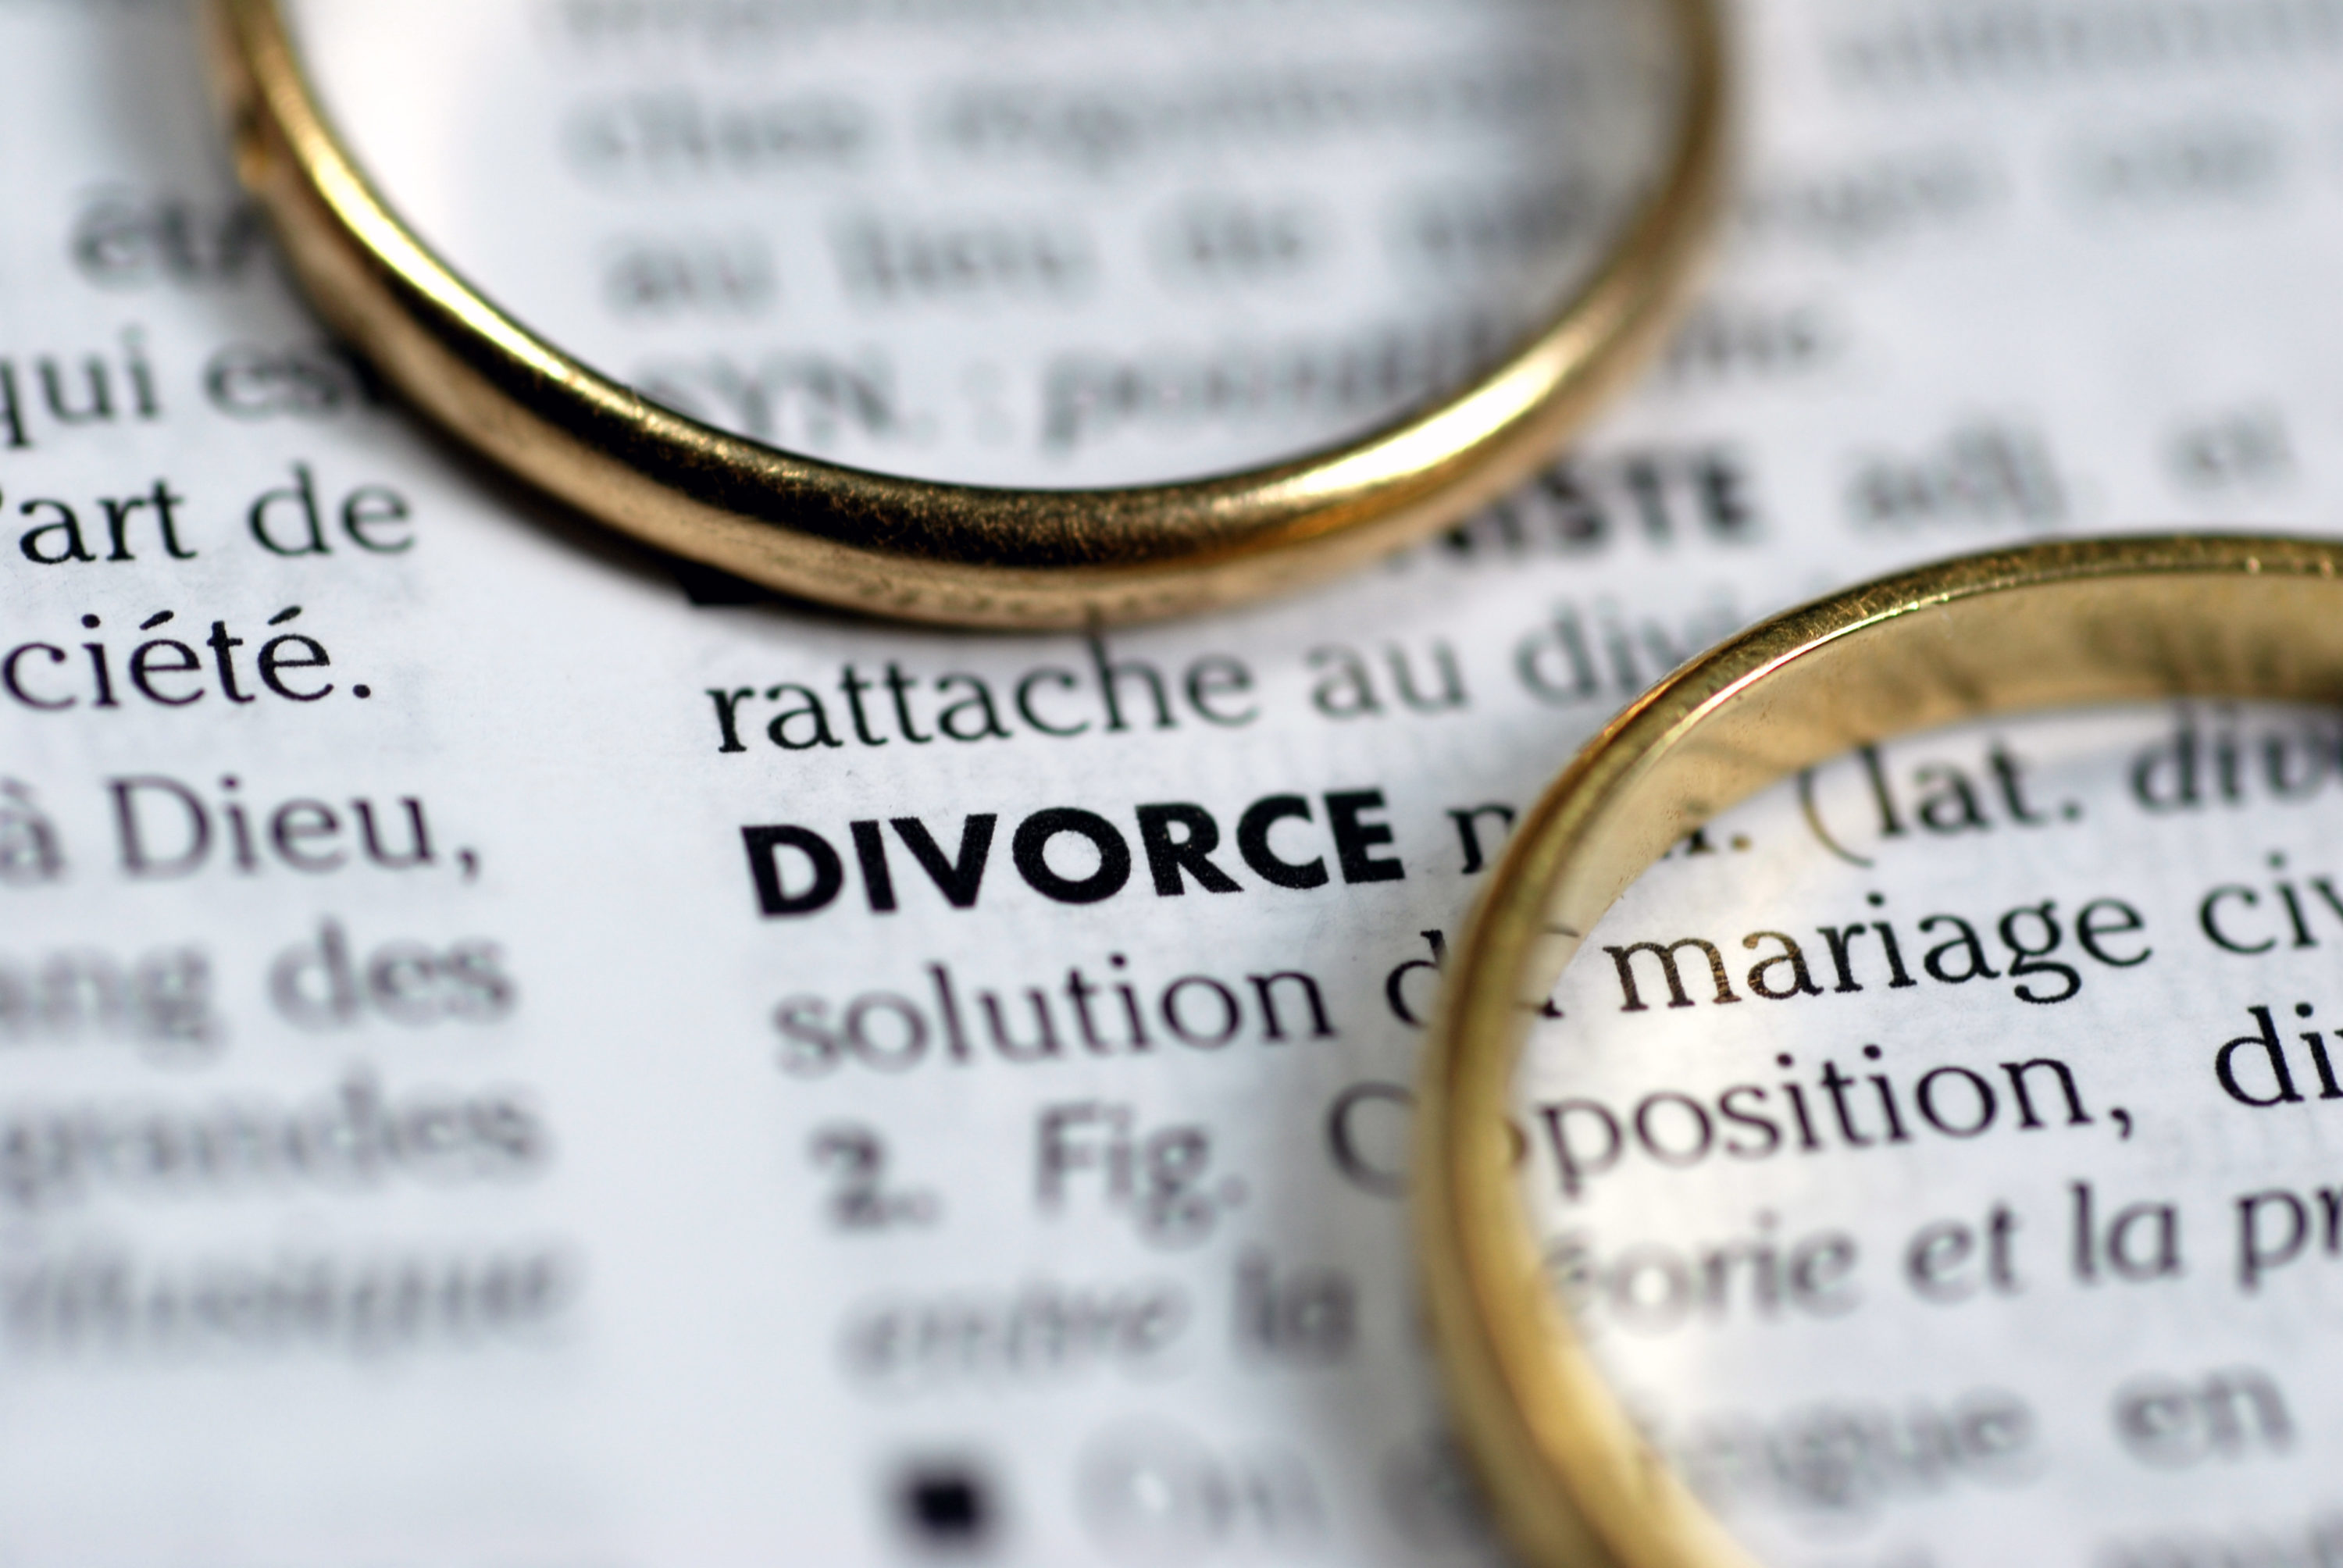 two wedding rings on top of a sheet with information about divorce